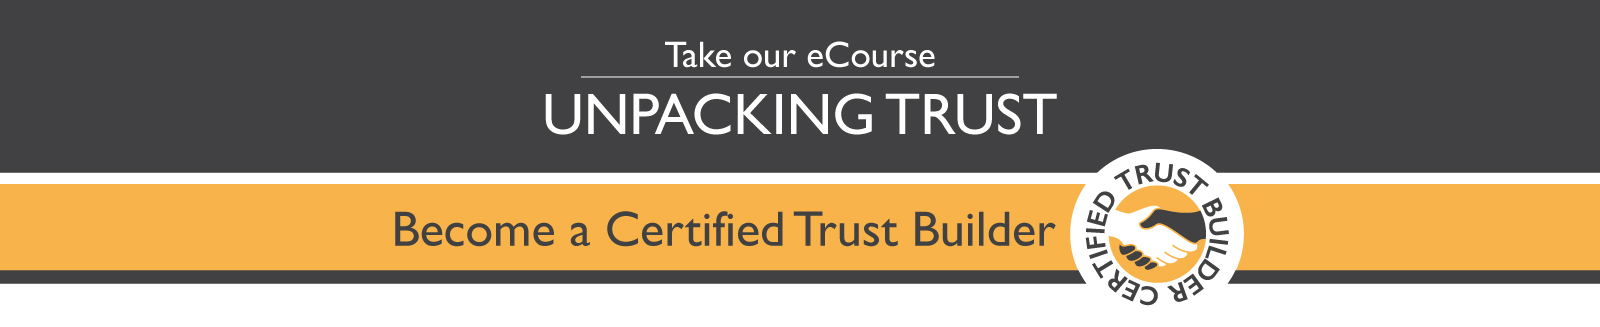 UnpackingTrust_Homepage_banner